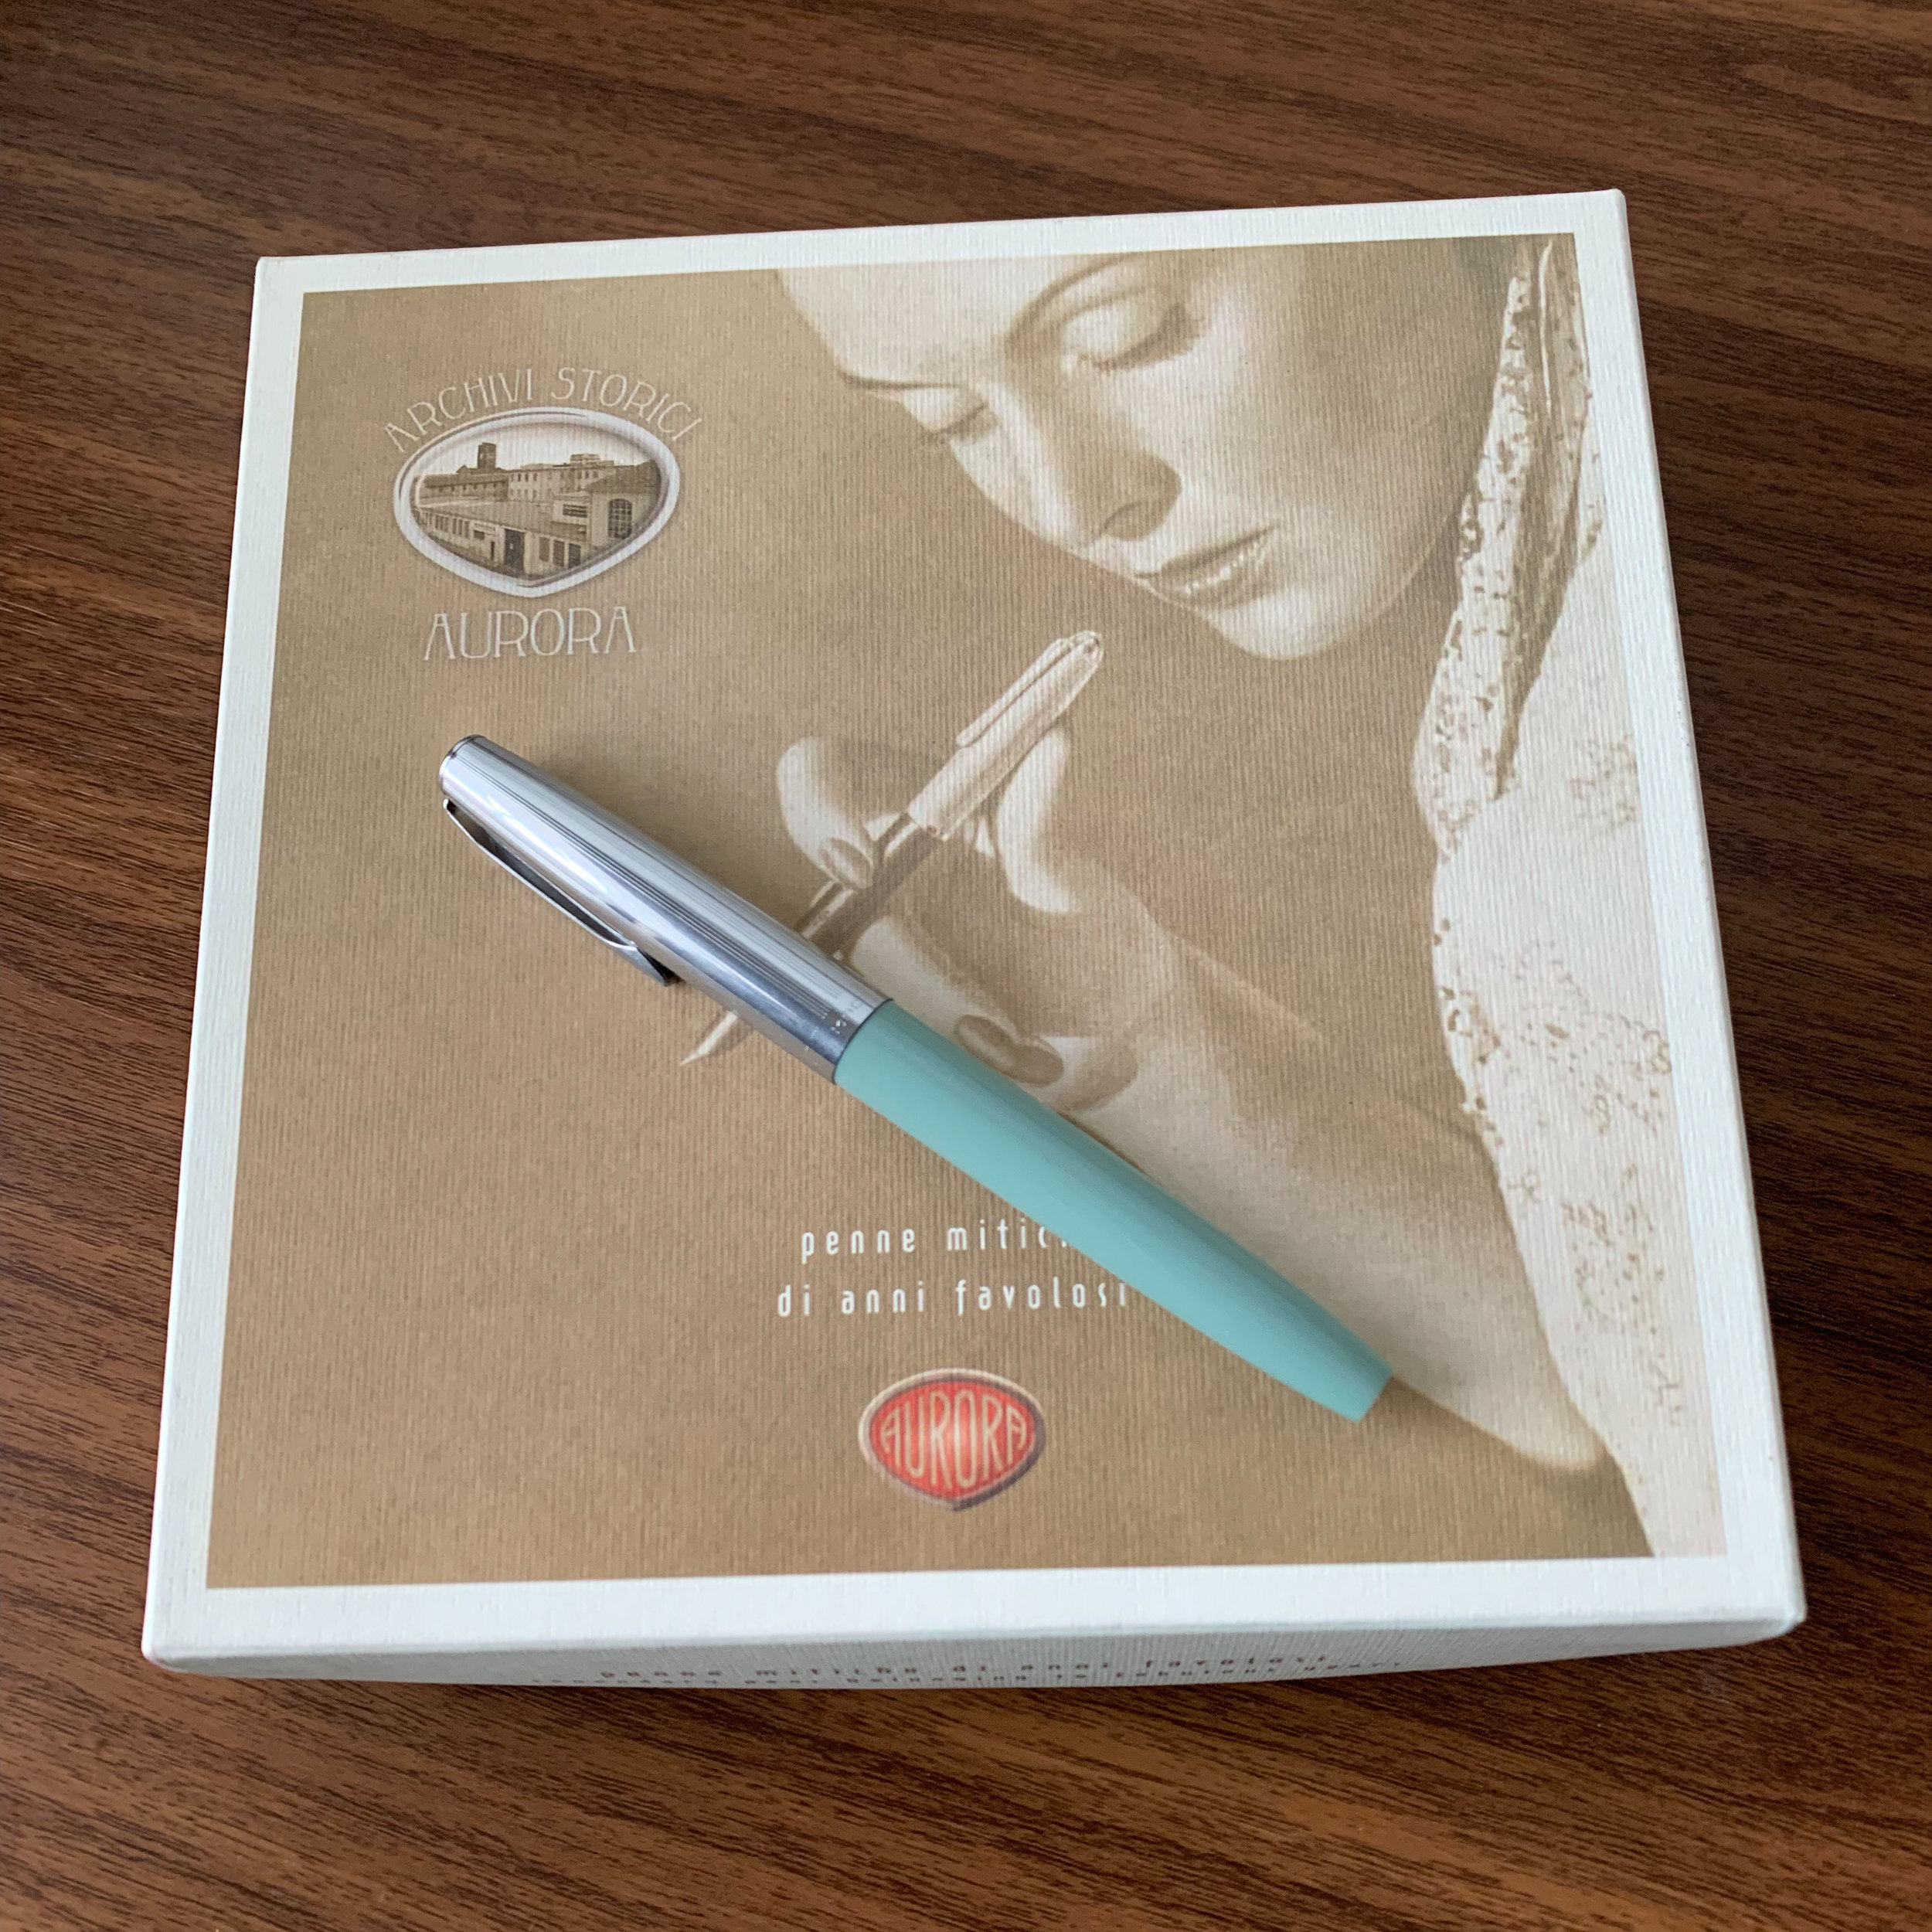 "I tend to ignore packaging, but the delivery on Aurora's ""Archivi Storici"" line is top notch. As shown in the ""open-box"" view below, you get a bottle of ink, converter, and cartridges along with your pen - everything you need to get writing straight away."